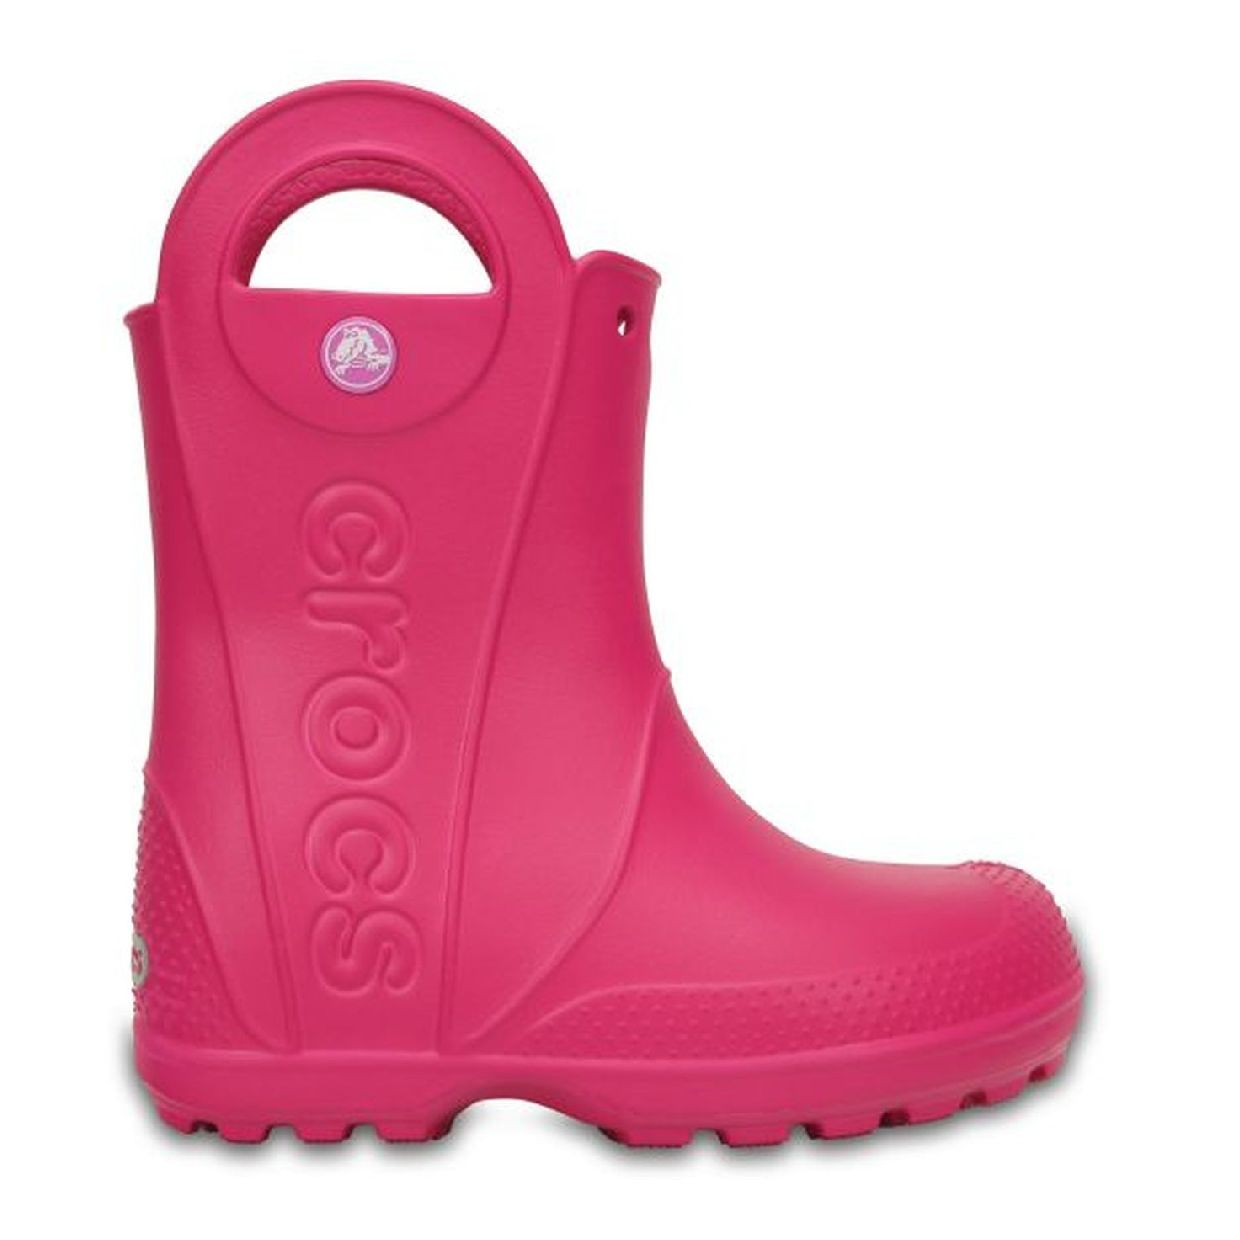 Crocs Handle It Rain Boot Kids Gummistiefel Stiefel Synthetik Kinder Schuhe FS16